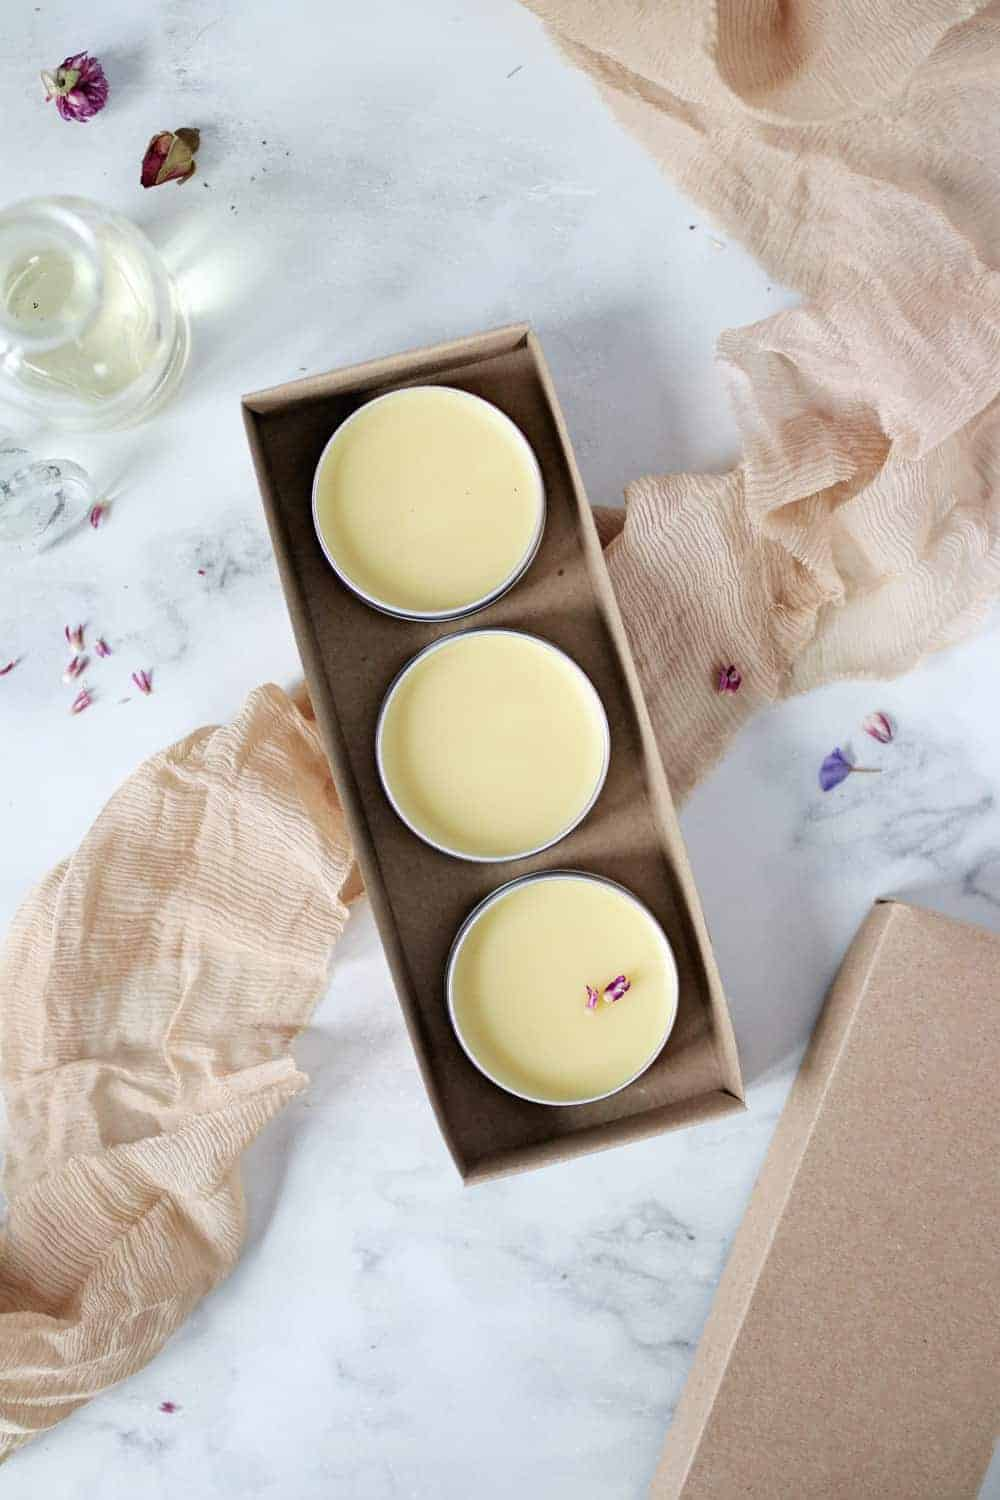 A DIY Solid Perfume Trio That's Perfect for Gifting